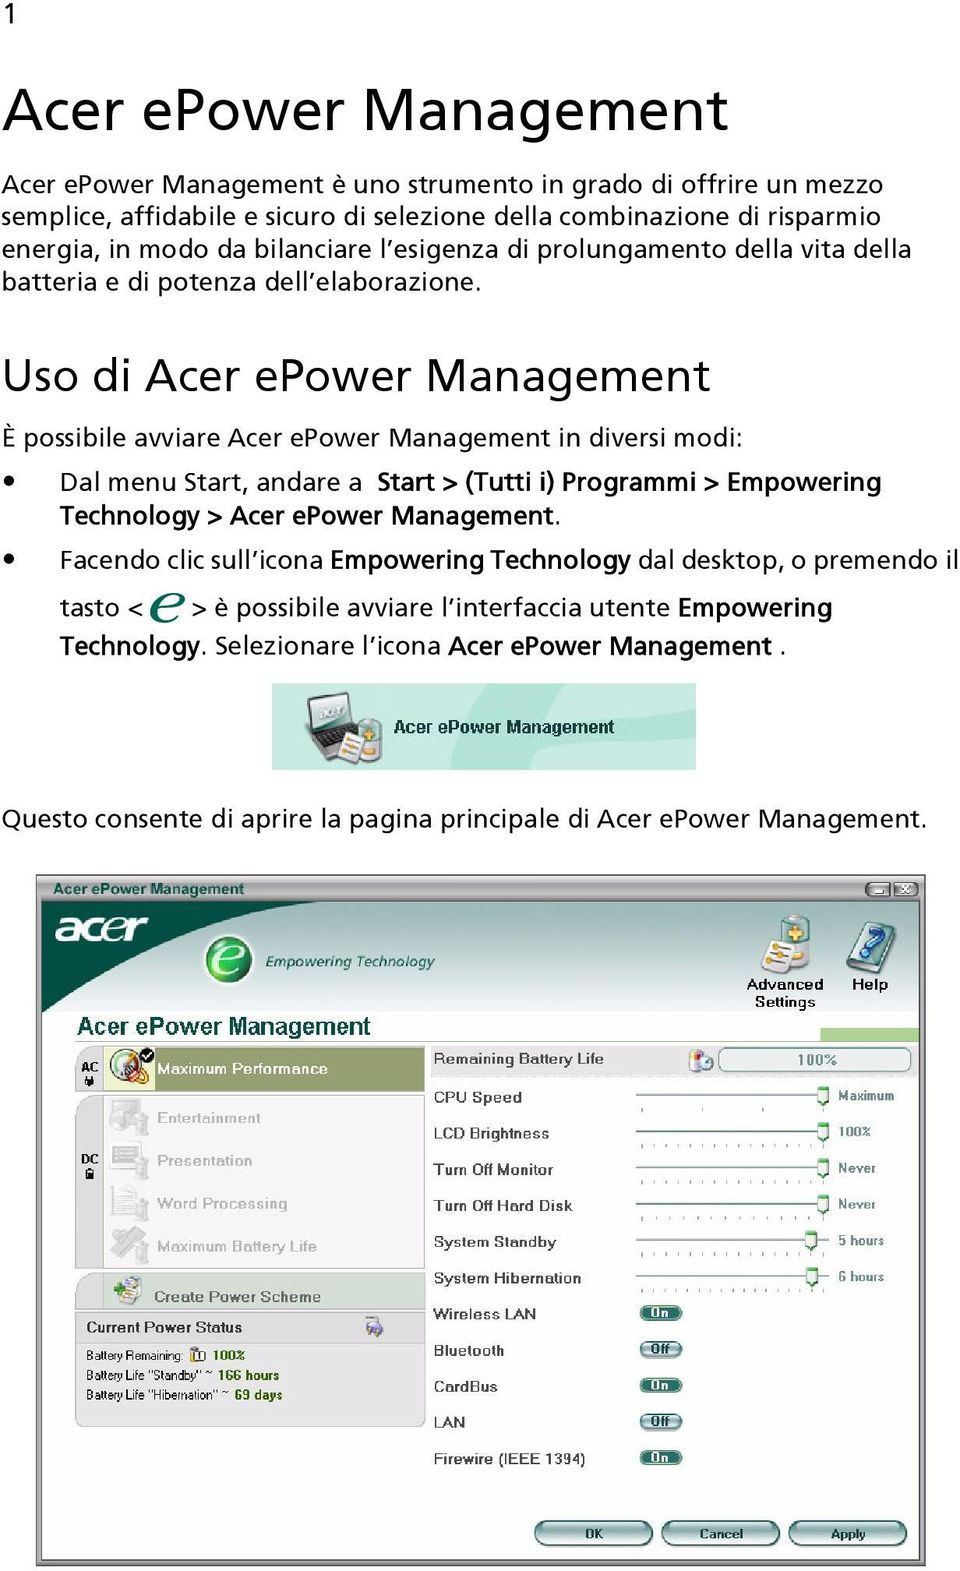 Uso di Acer epower Management È possibile avviare Acer epower Management in diversi modi: Dal menu Start, andare a Start > (Tutti i) Programmi > Empowering Technology > Acer epower